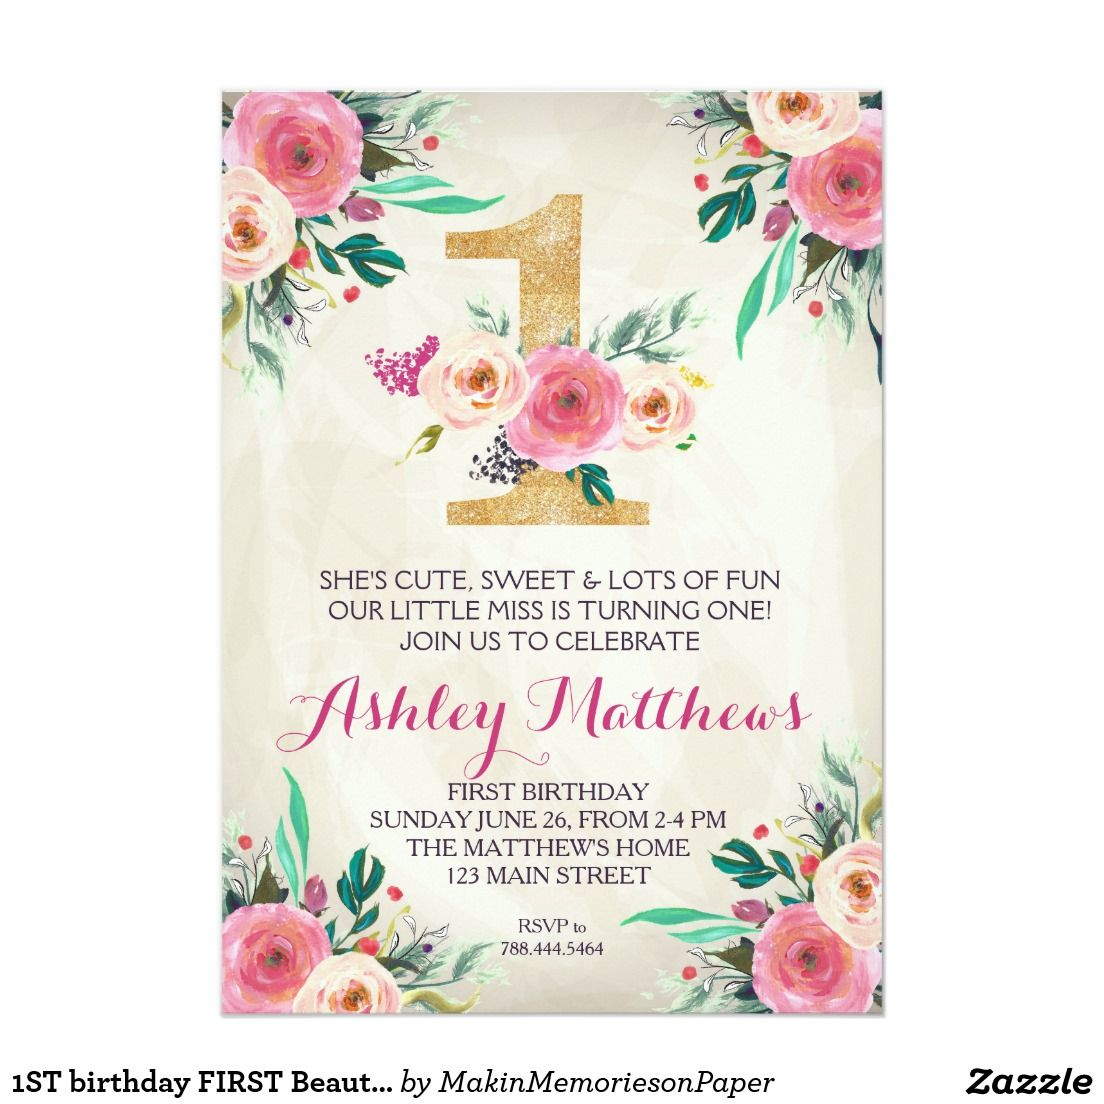 1ST birthday FIRST Beautiful Floral Invitation, Card | Shop the ...